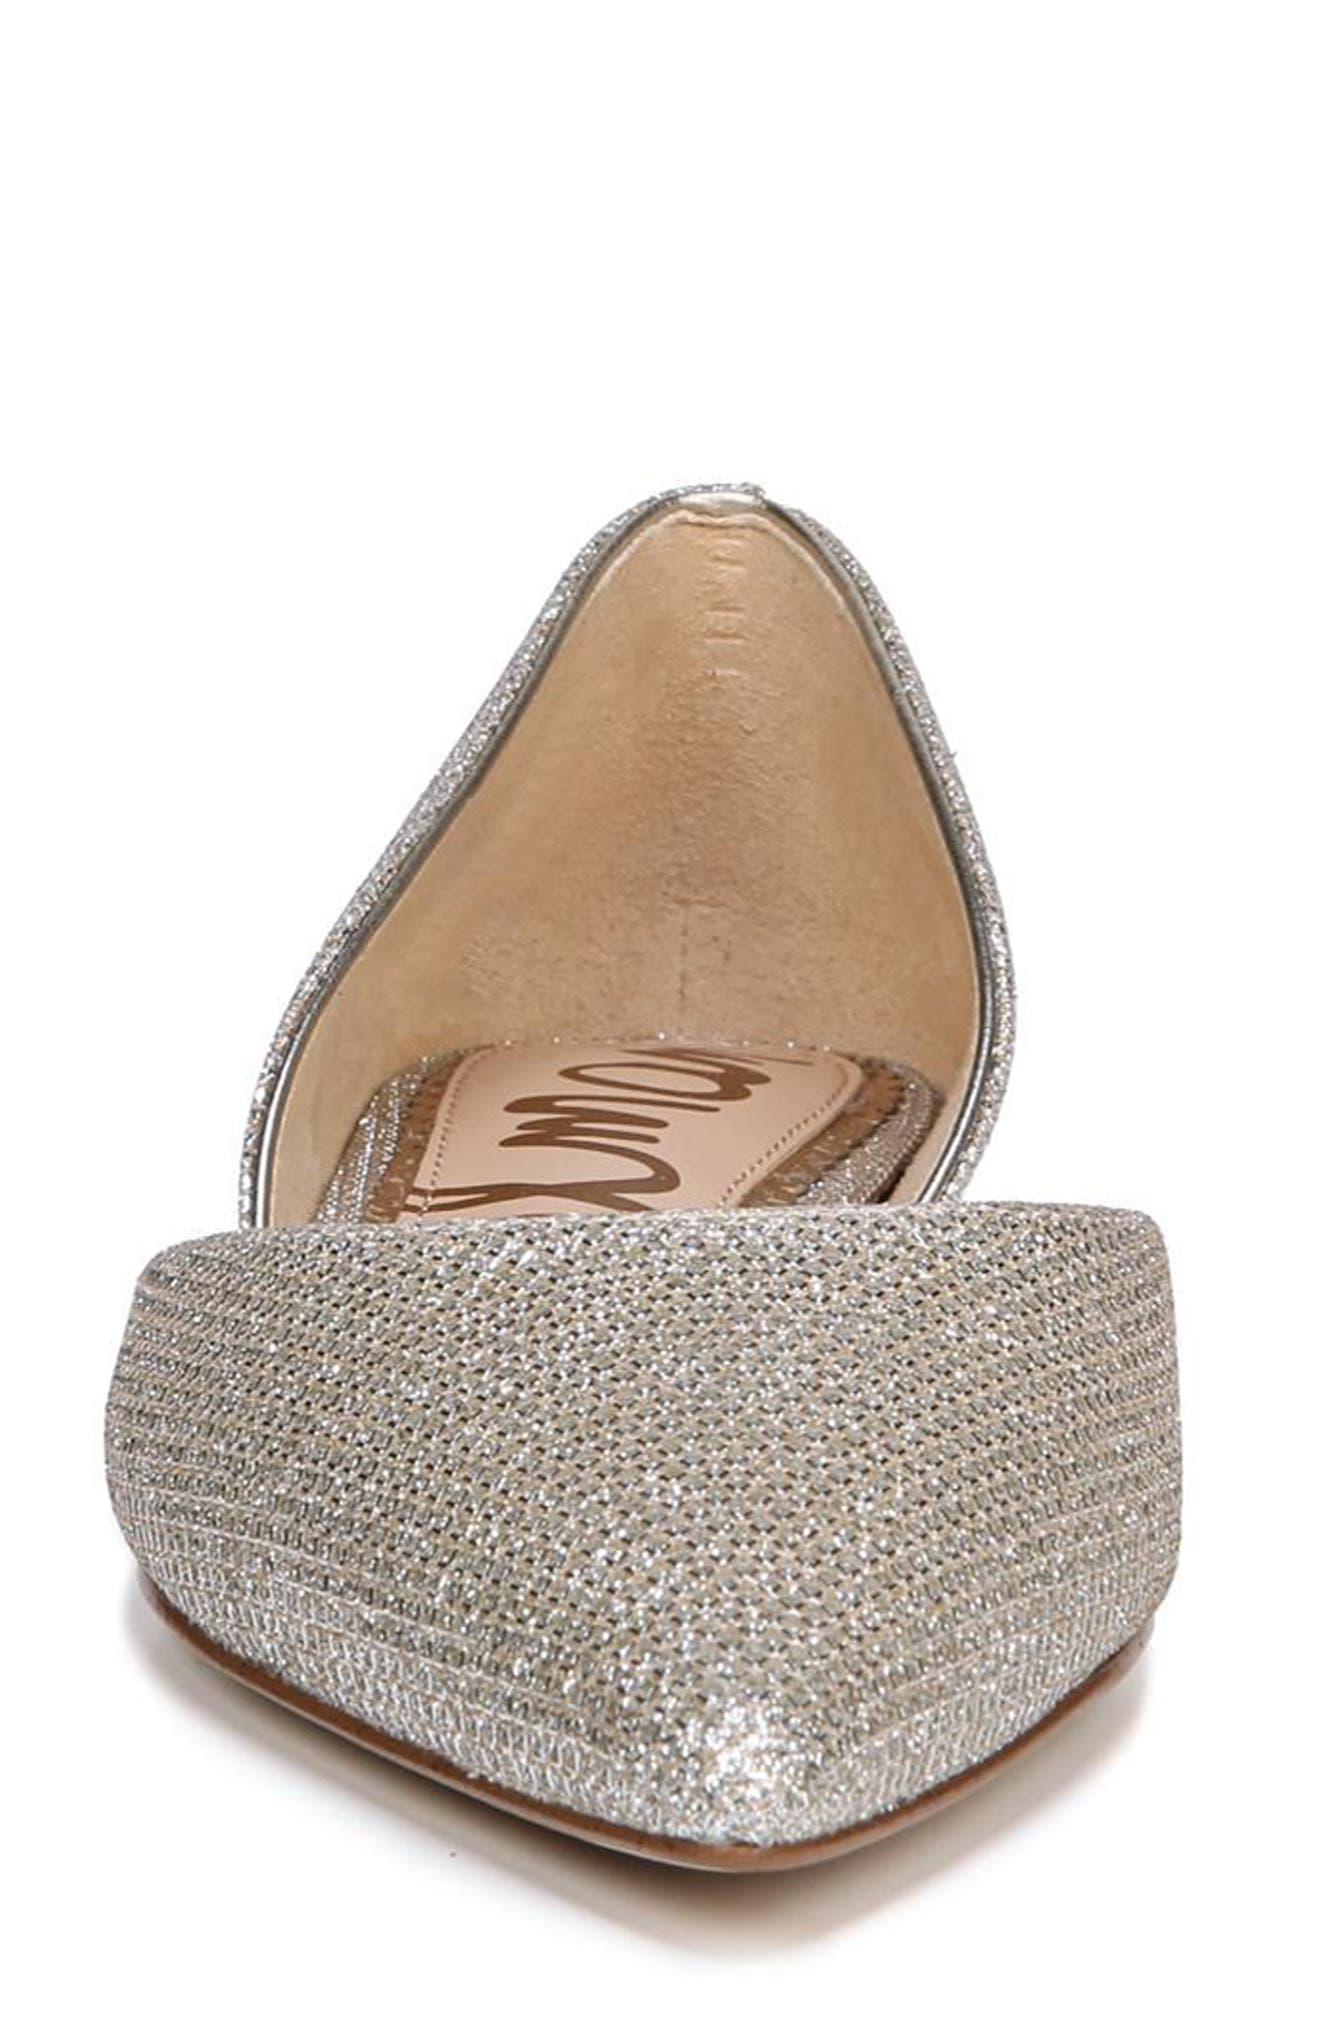 Rodney Pointy Toe d'Orsay Flat,                             Alternate thumbnail 4, color,                             JUTE GLAM FABRIC